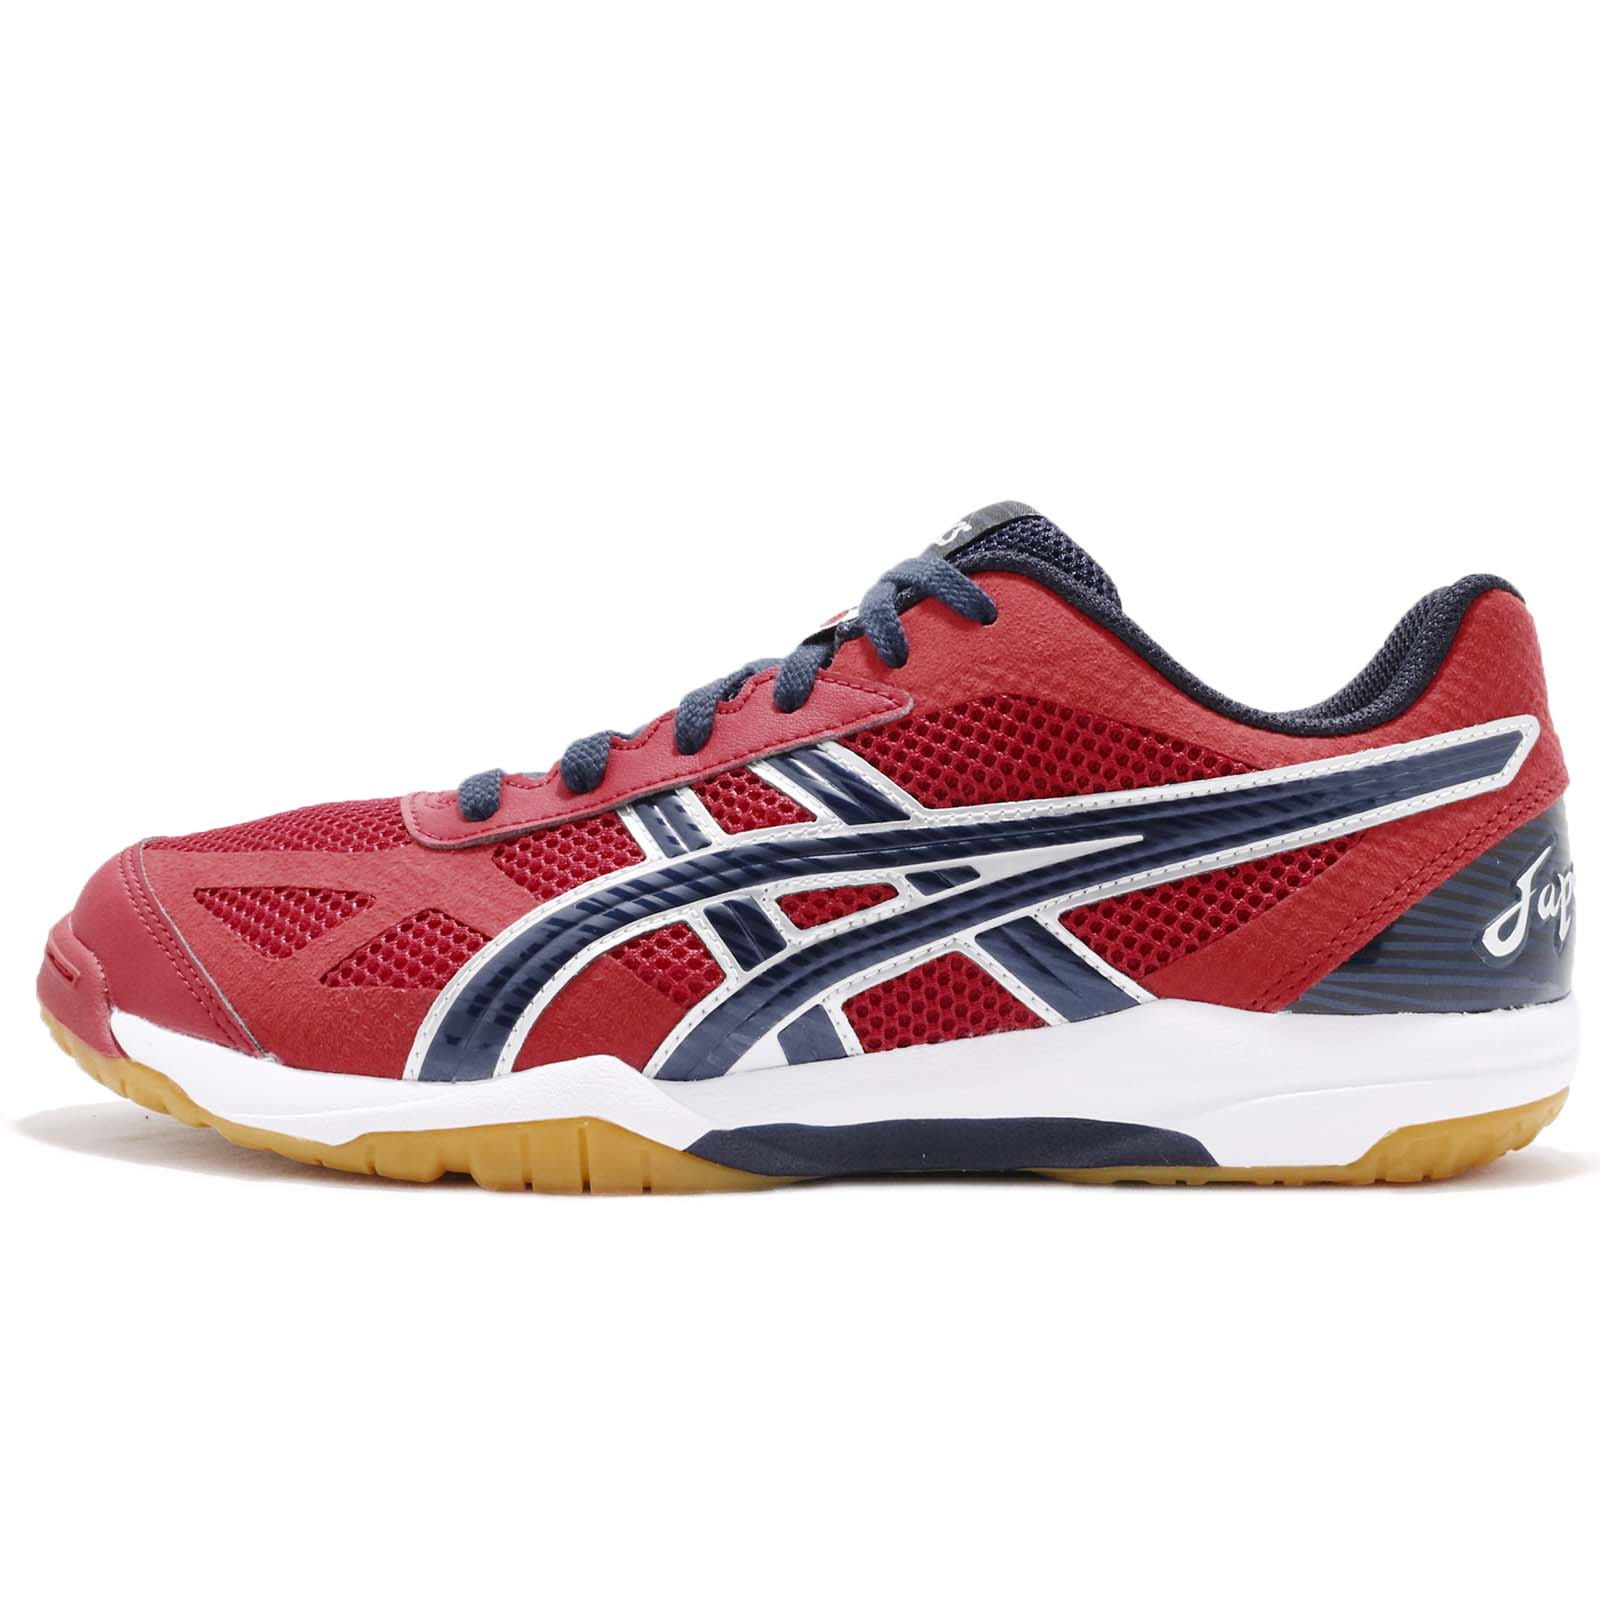 b0373407ae80 Asics Rote Japan Light Red Peacoat Men Volleyball Badminton Shoes  TVR490-2358